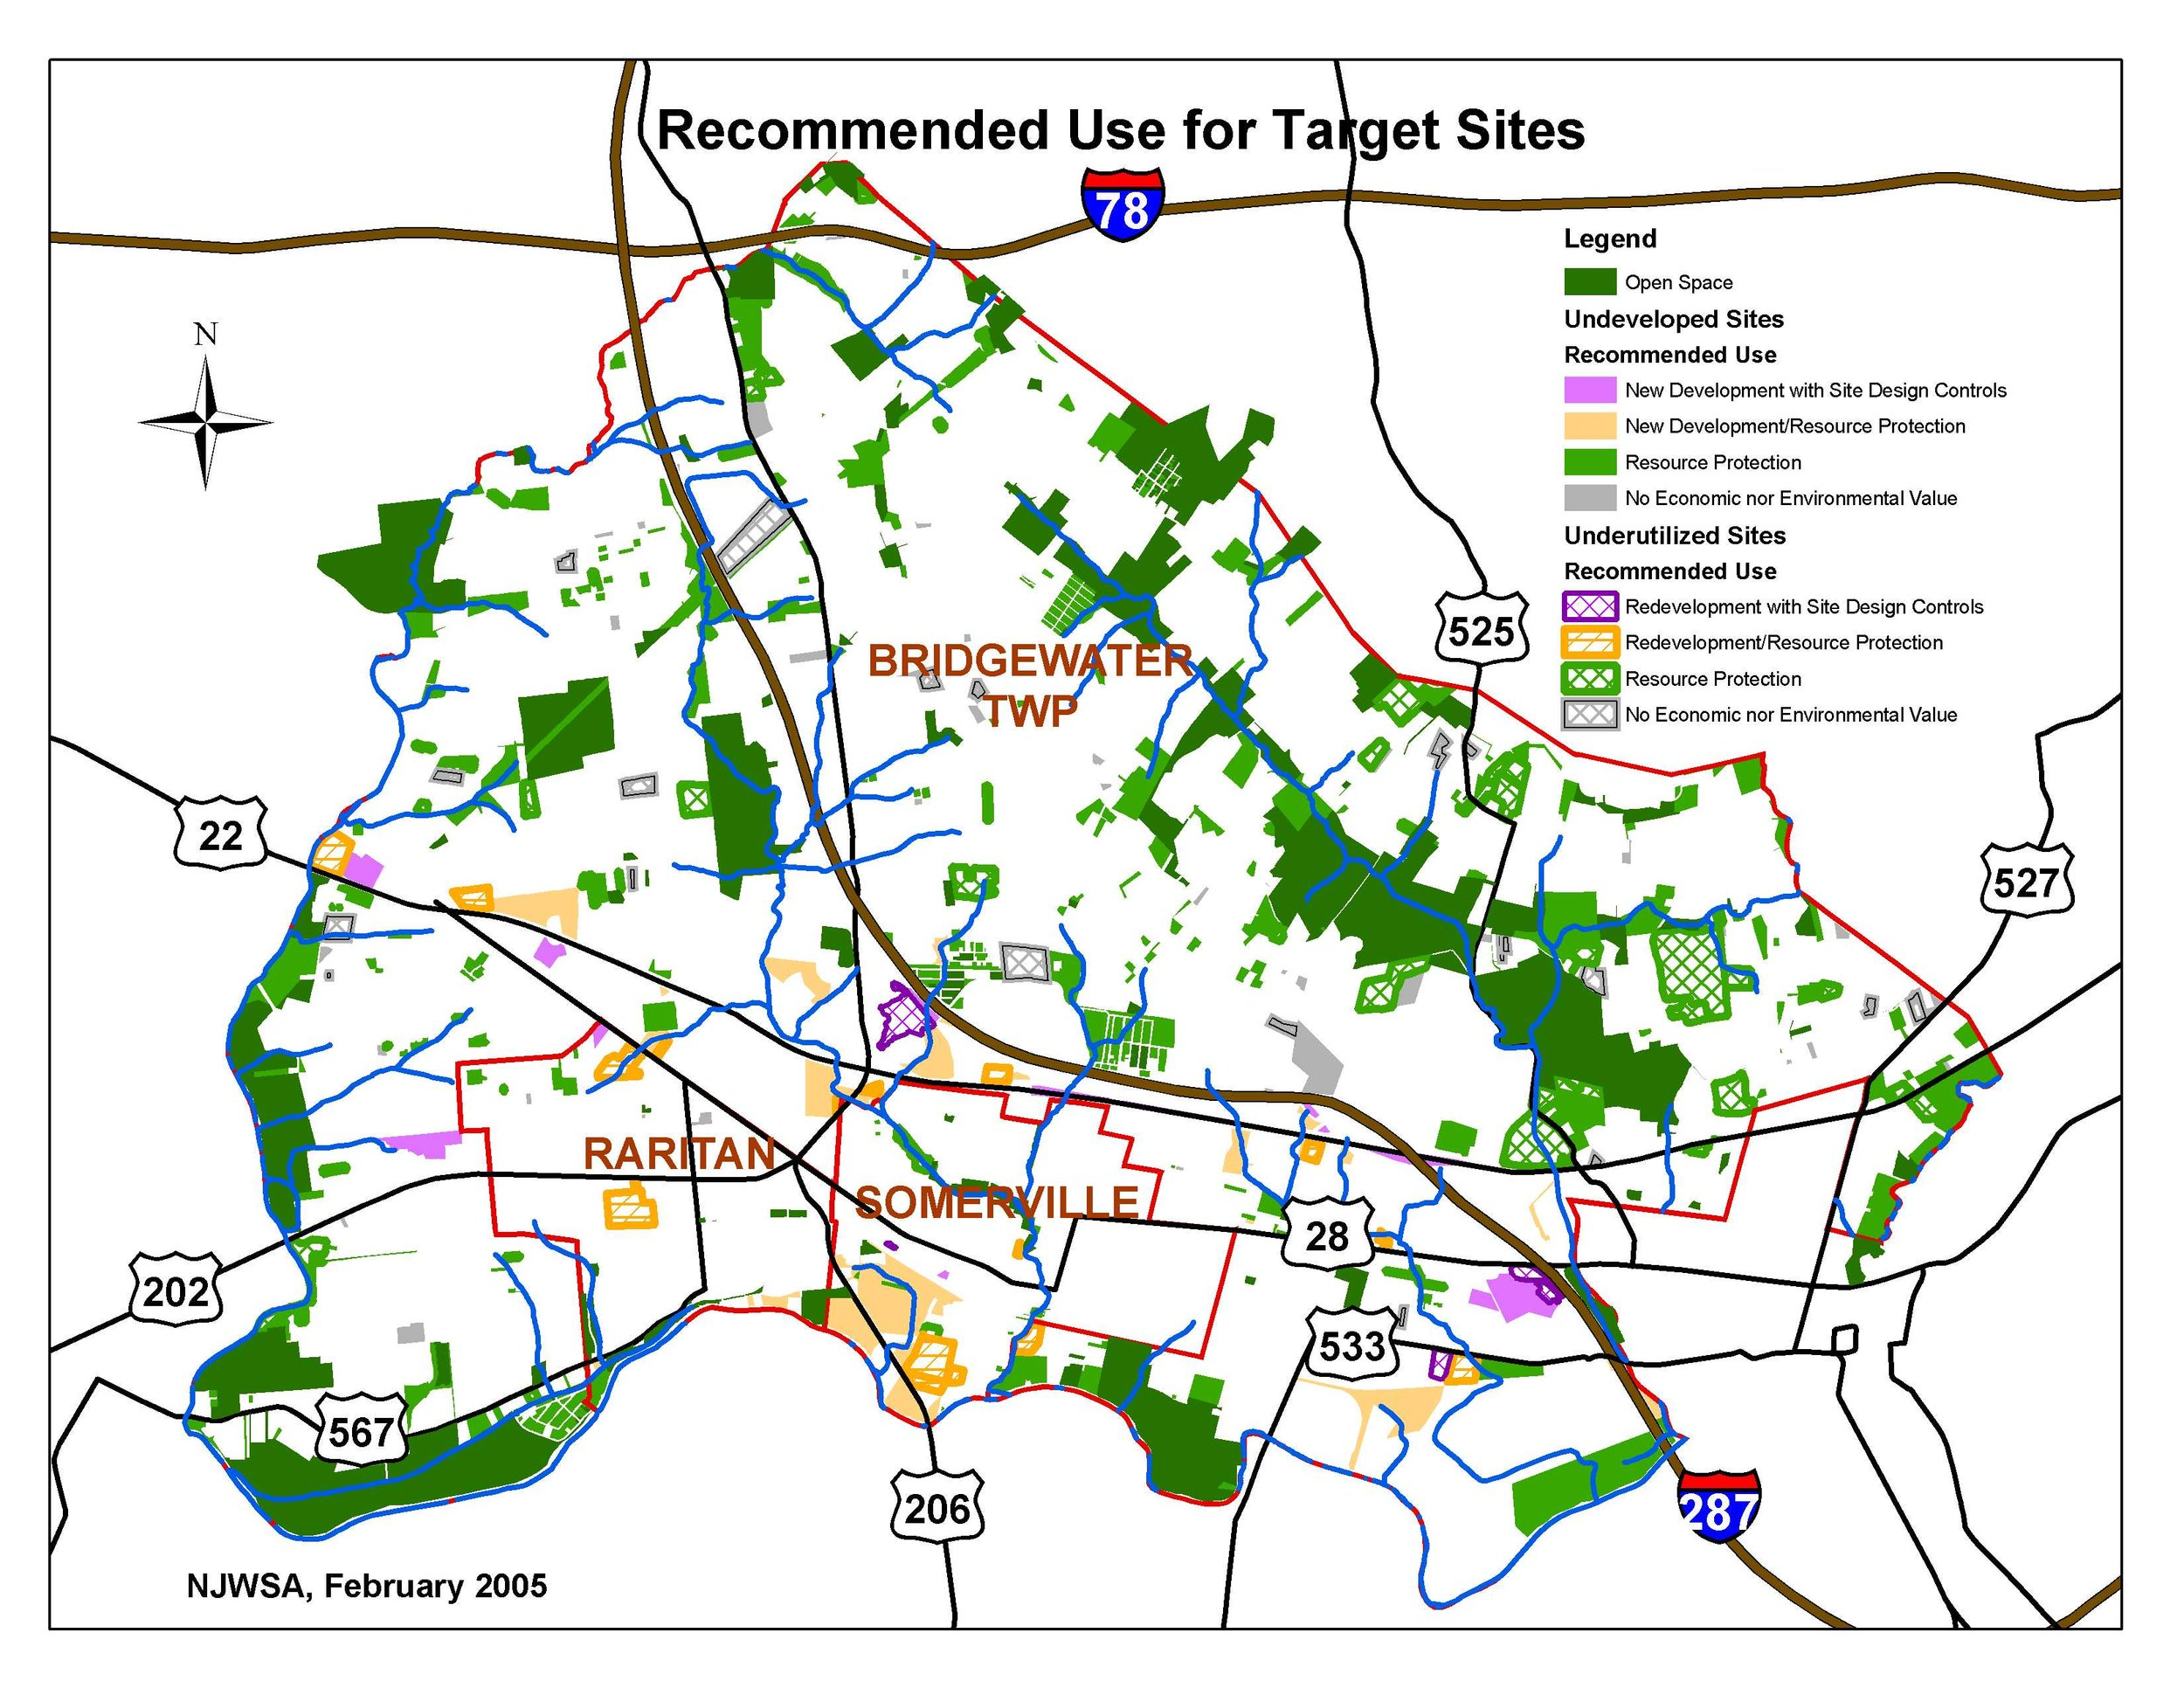 Opportunities for Watershed Protection and Economic Growth in New Jersey's Urban and Suburban Watersheds